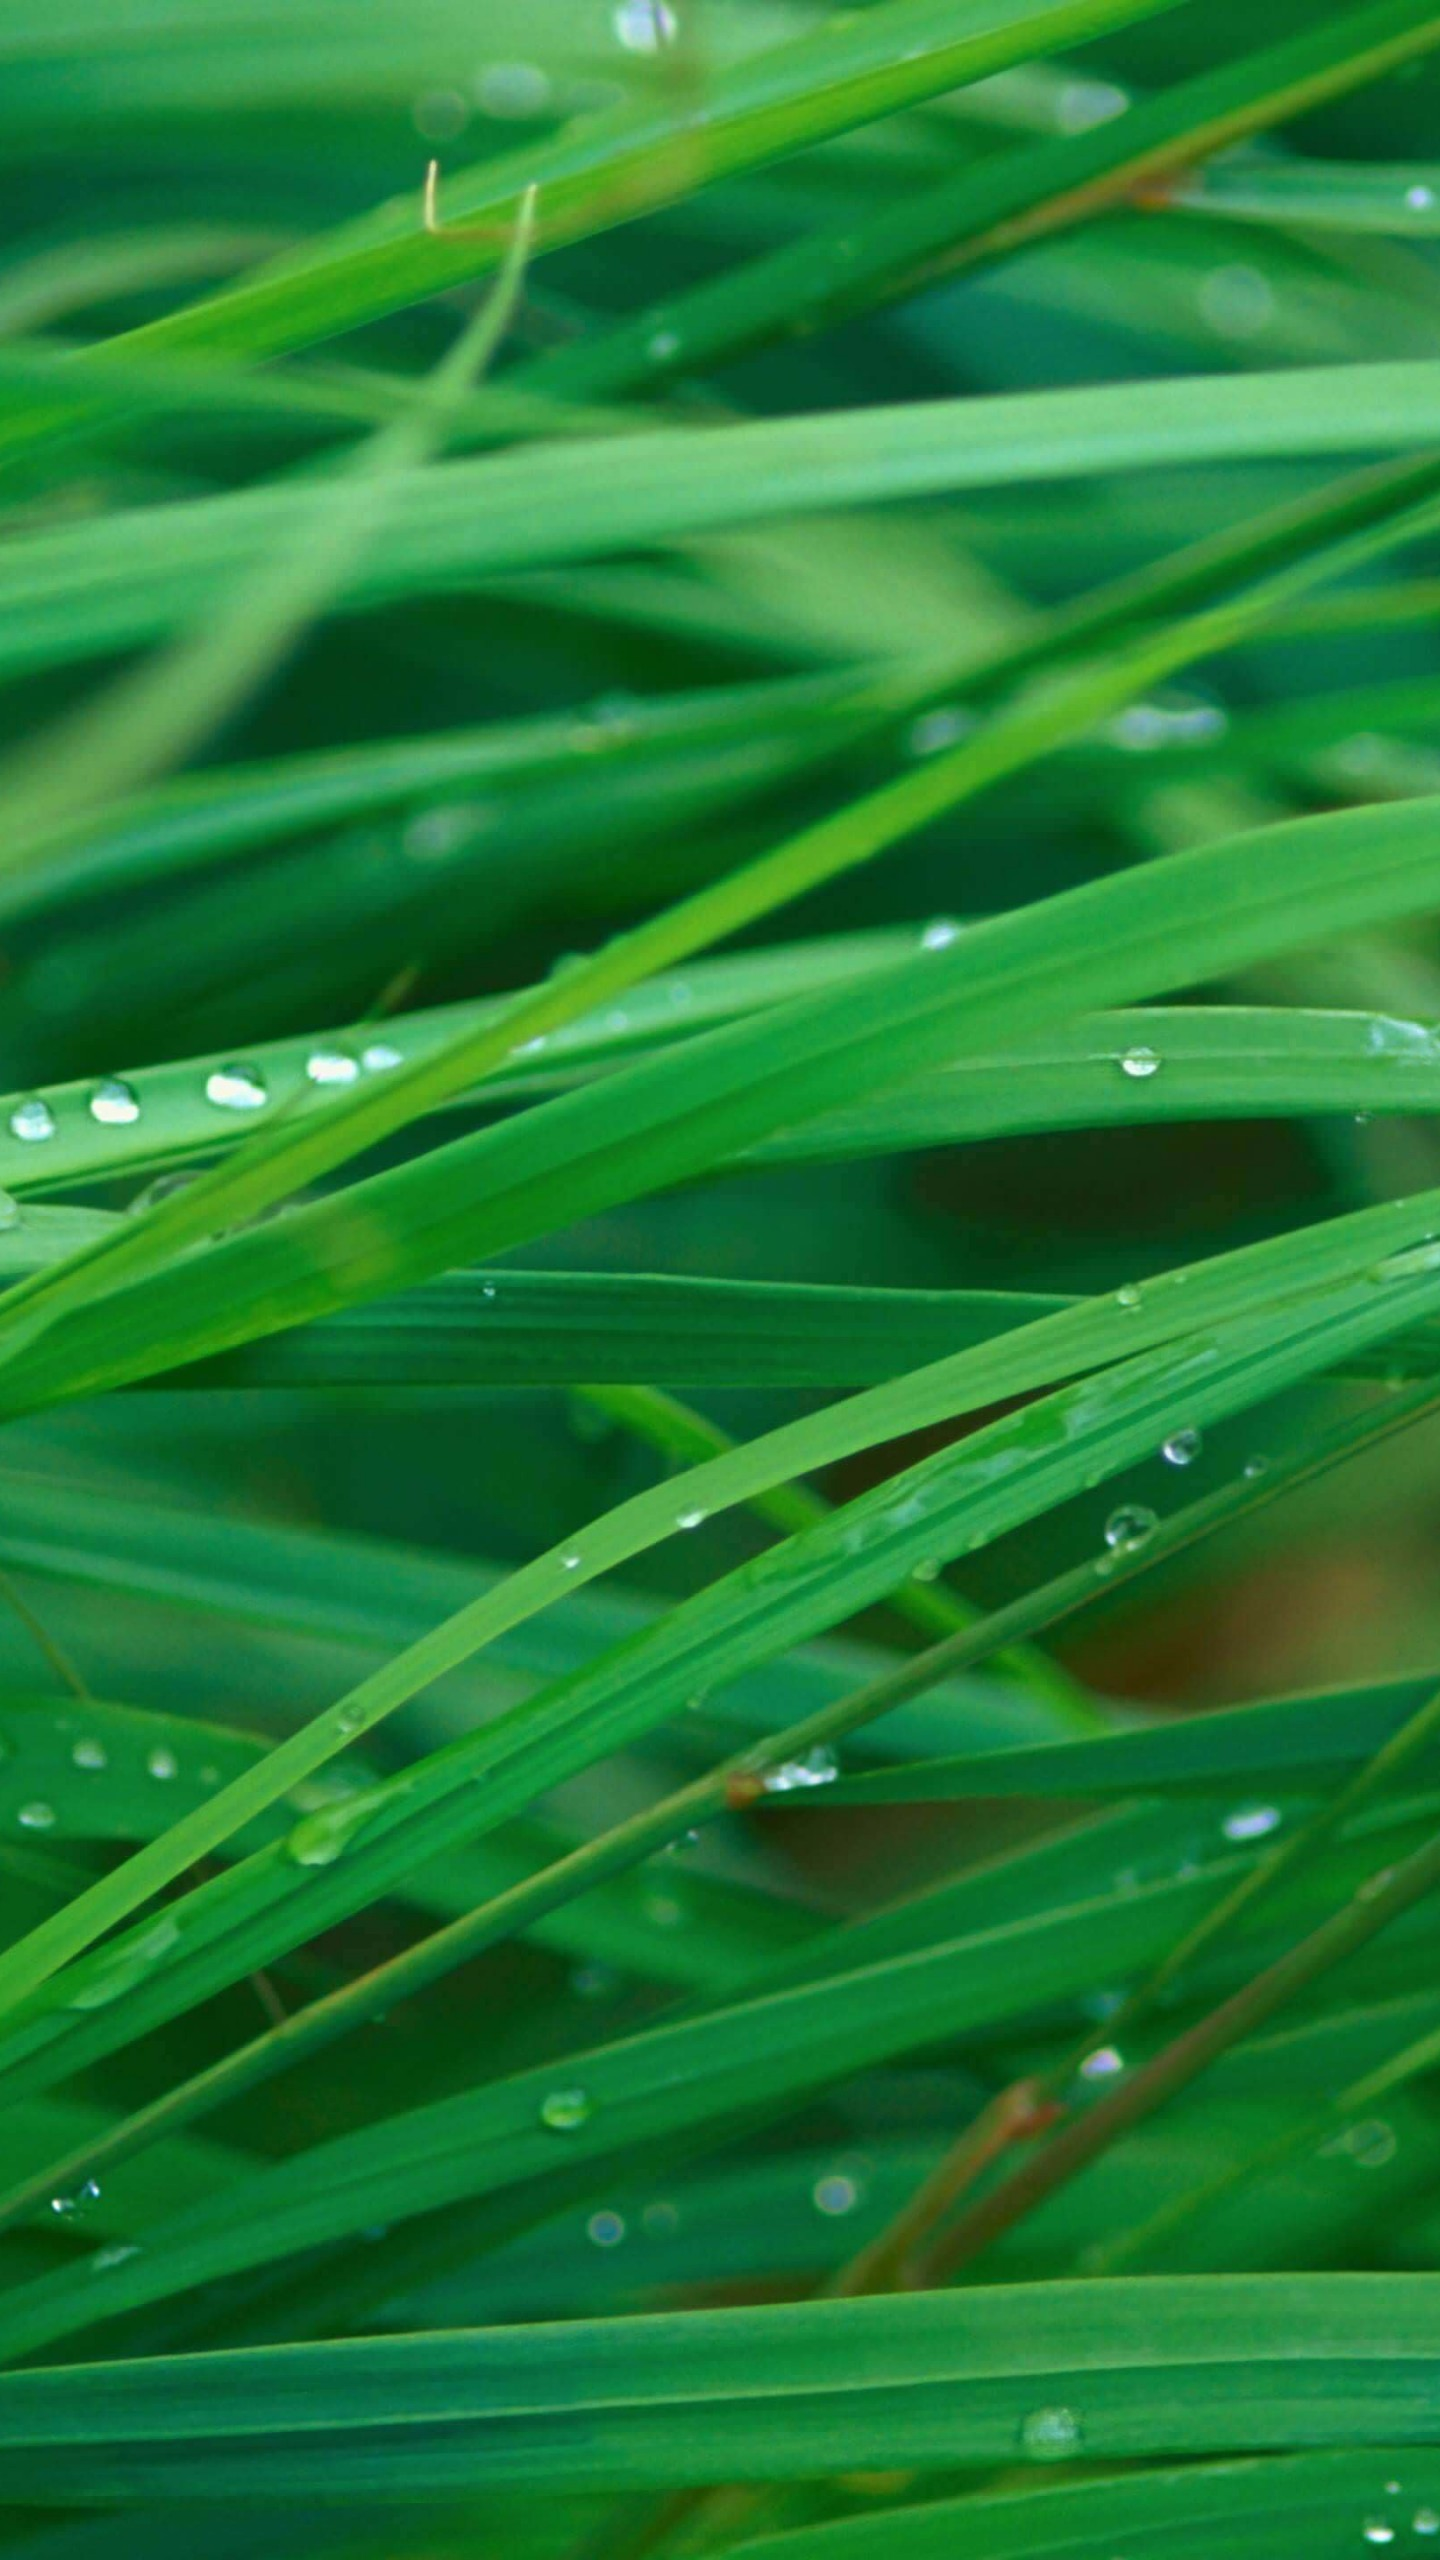 Green Blades Of Grass Wallpaper for SAMSUNG Galaxy Note 4